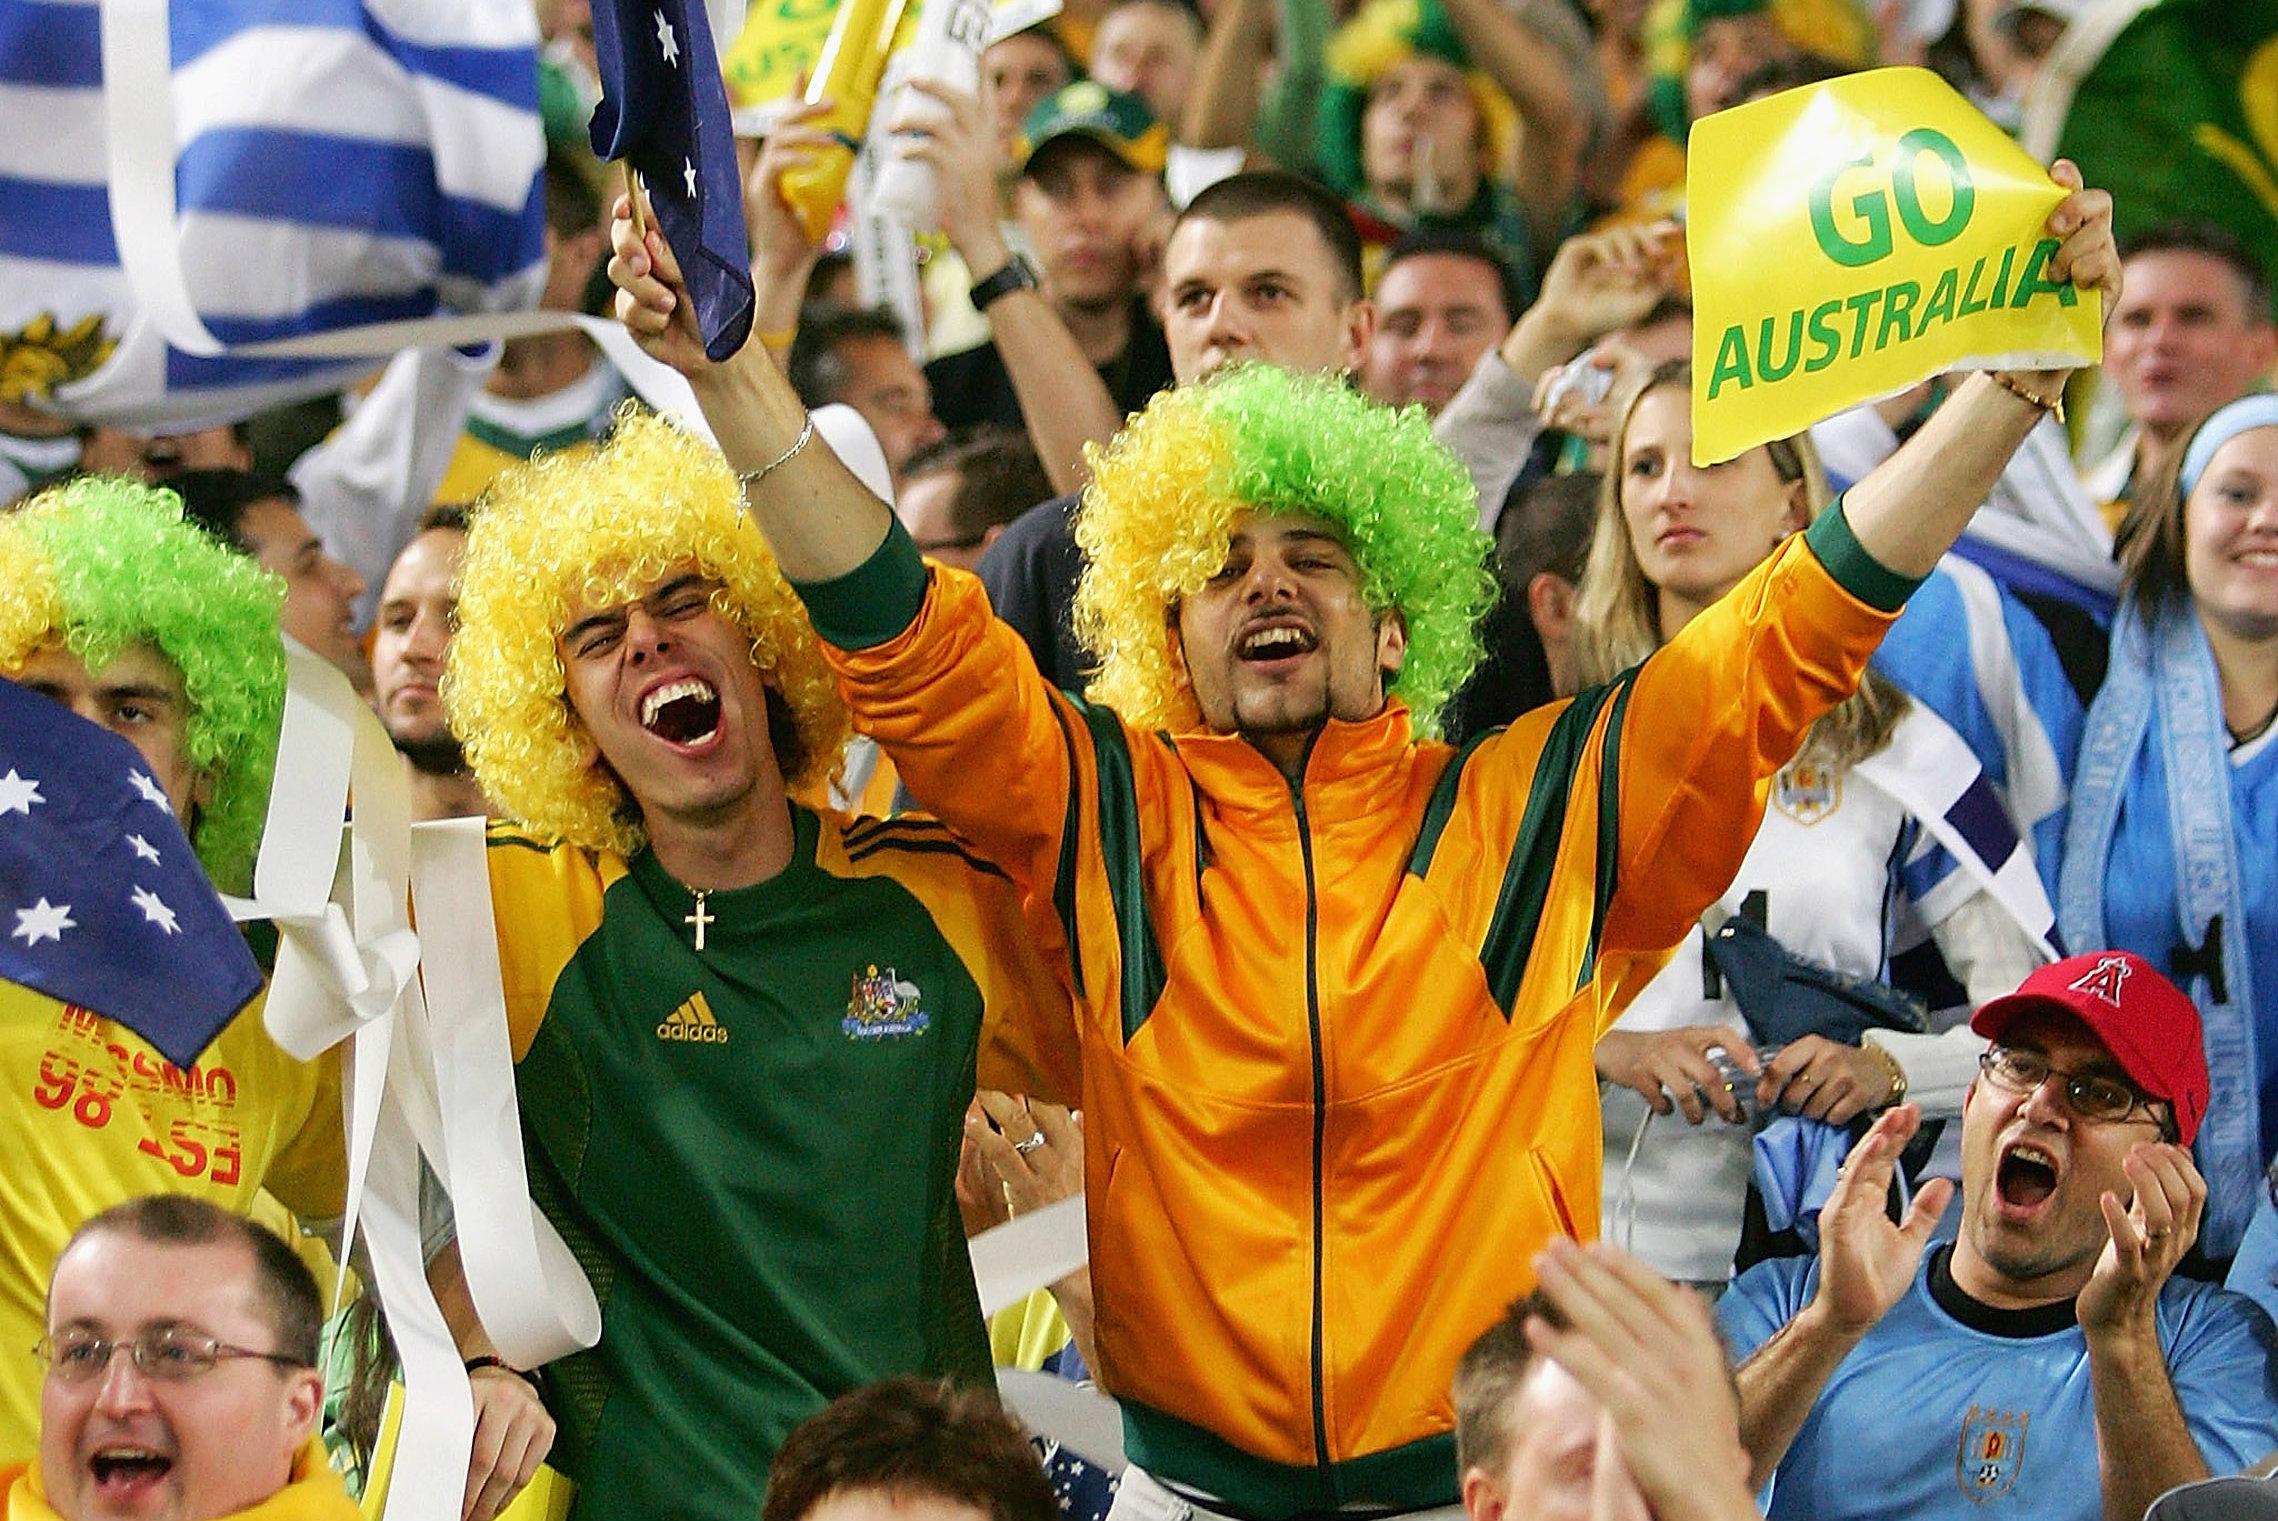 Socceroos fans at the 2005 World Cup qualifier against Uruguay.